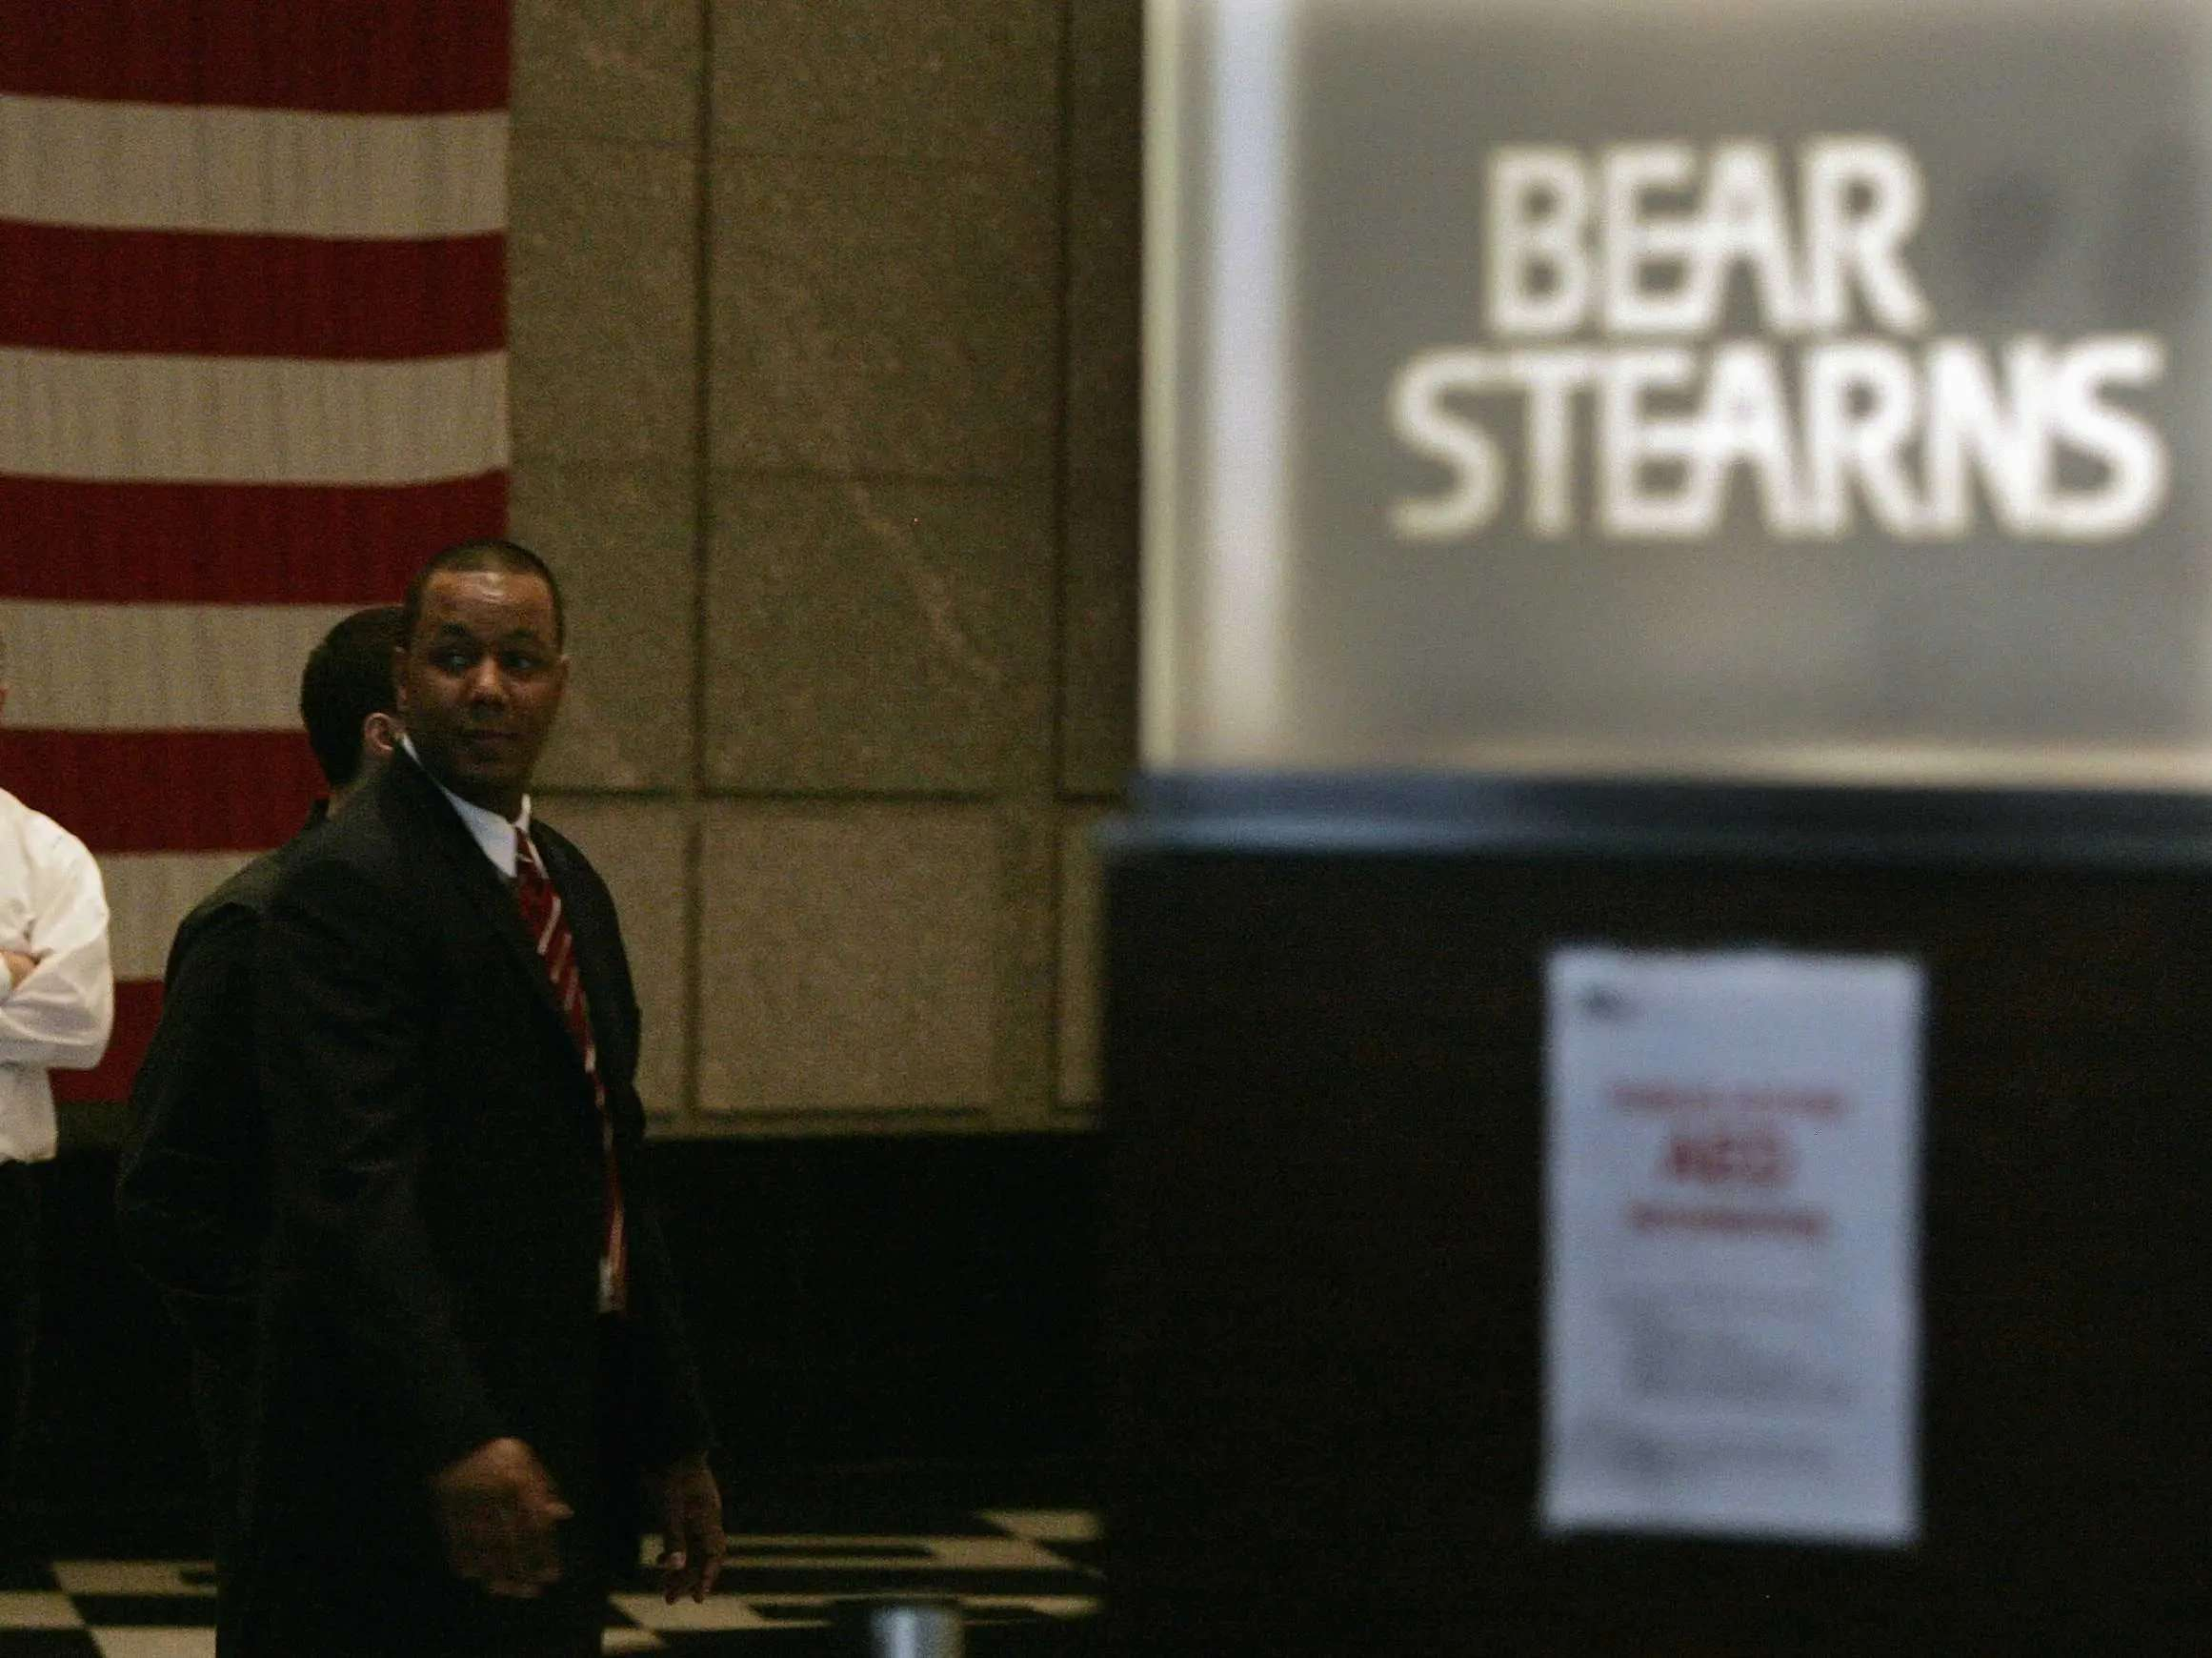 JUN 21, 2007: Merril Lynch sells off assets in two Bear Stearns hedge funds as the funds hemorrhage billions of dollars on bad subprime bets.